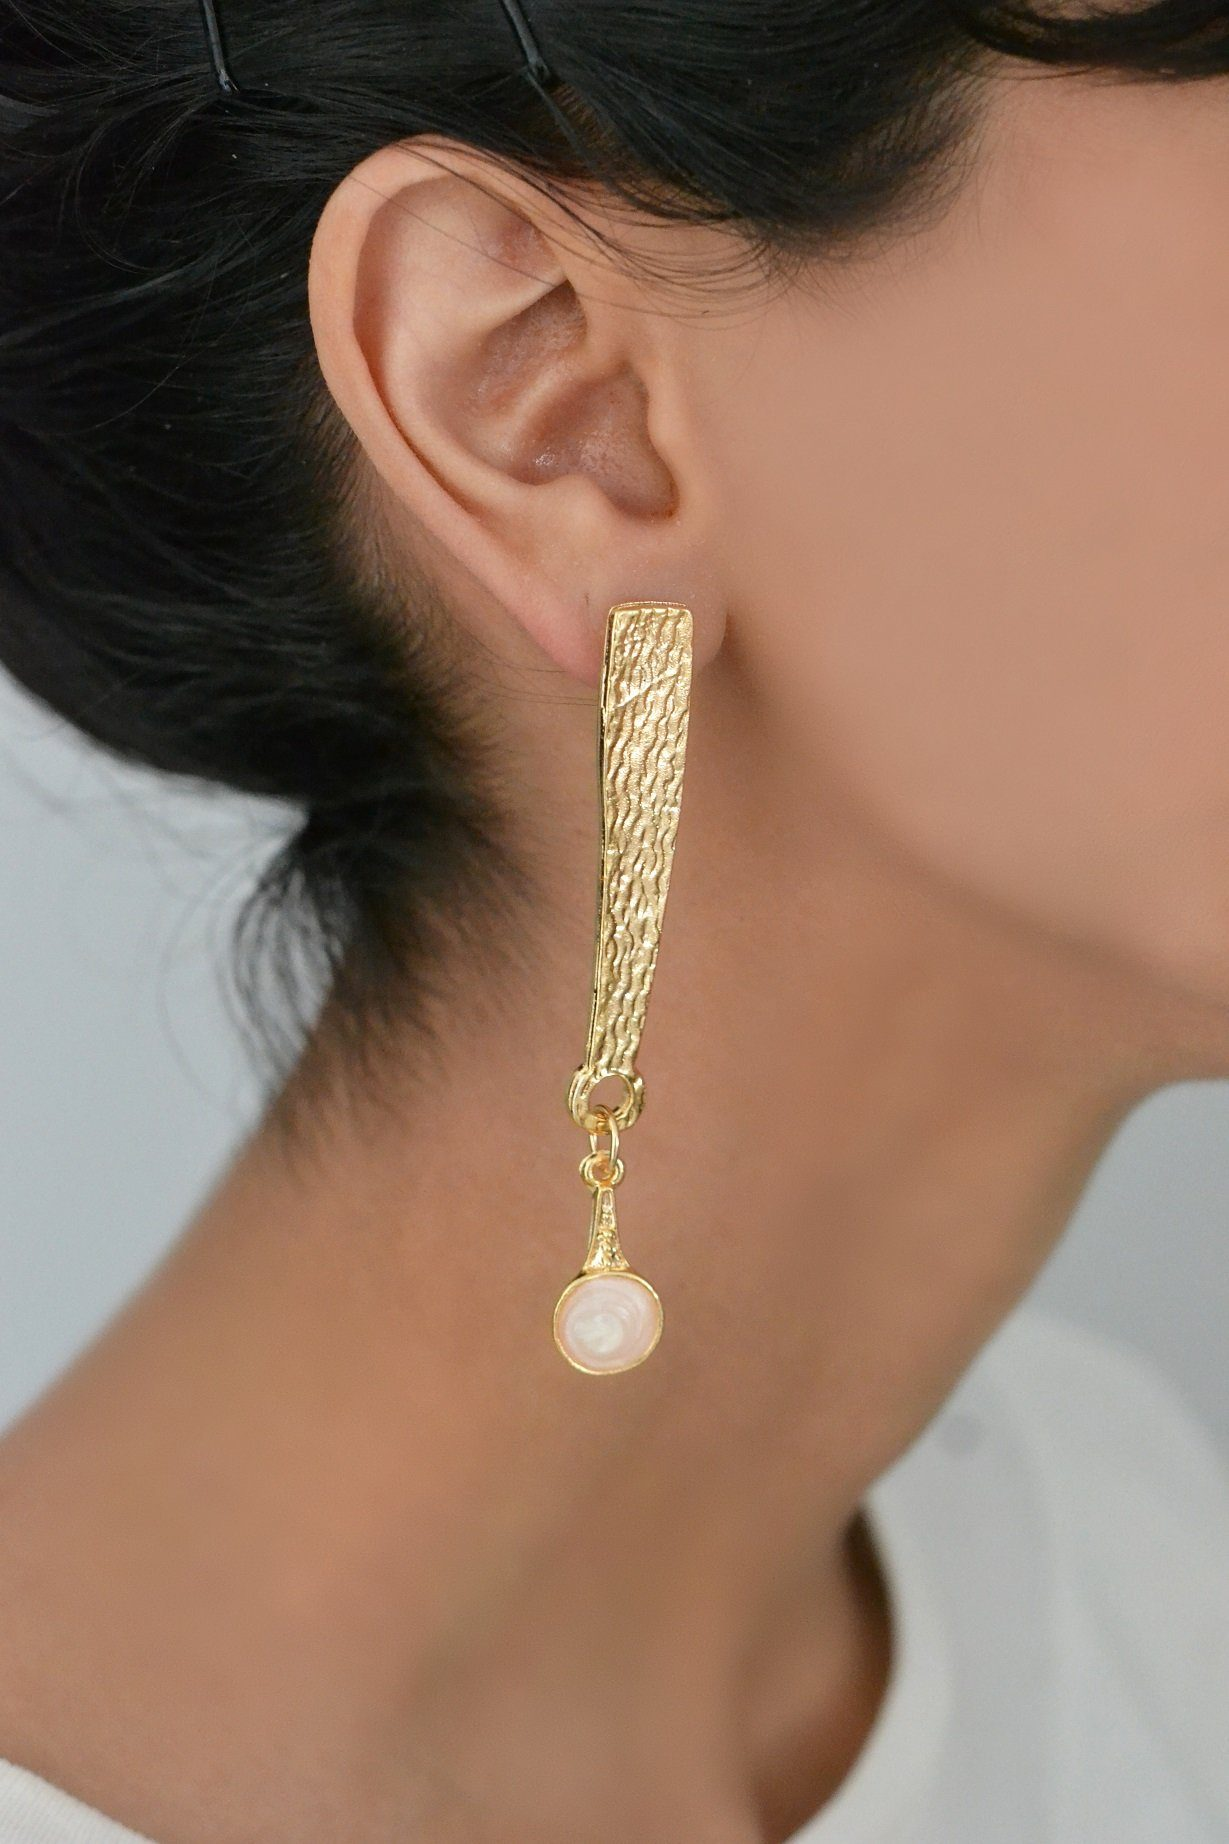 Interobang Earrings